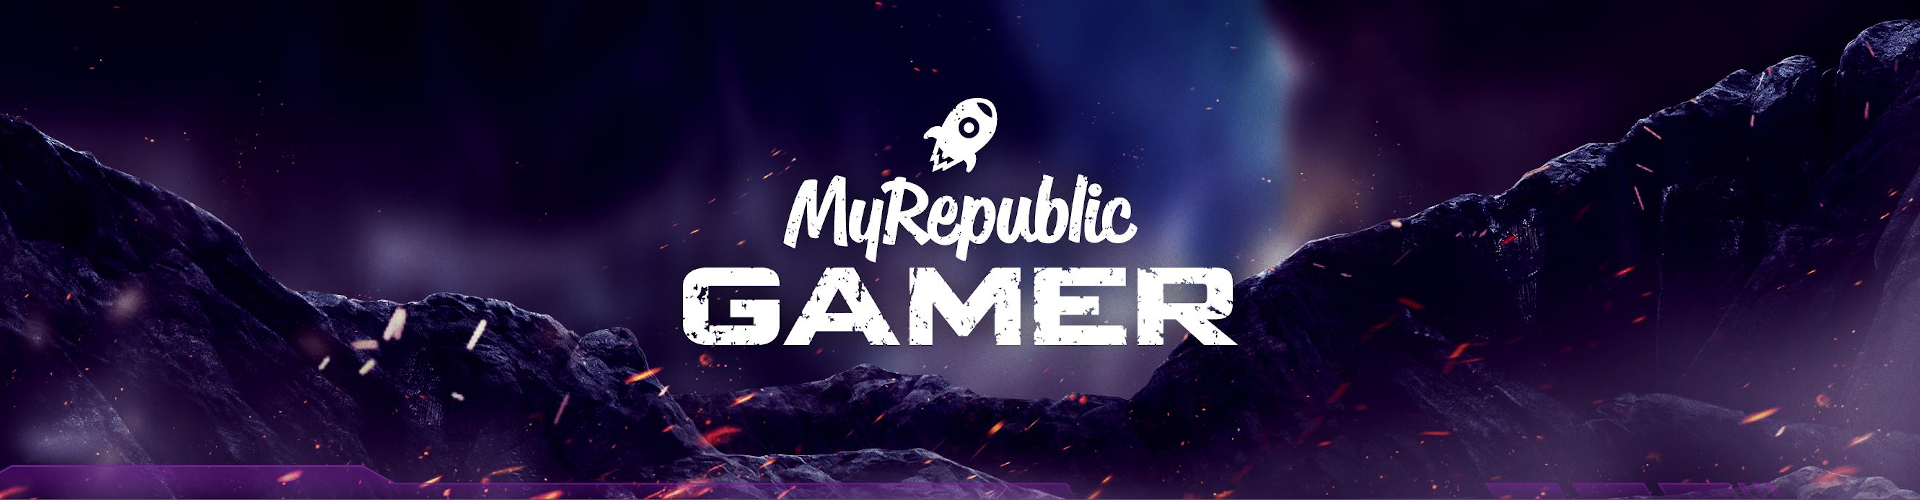 MyRepublic Gamer Banner Large